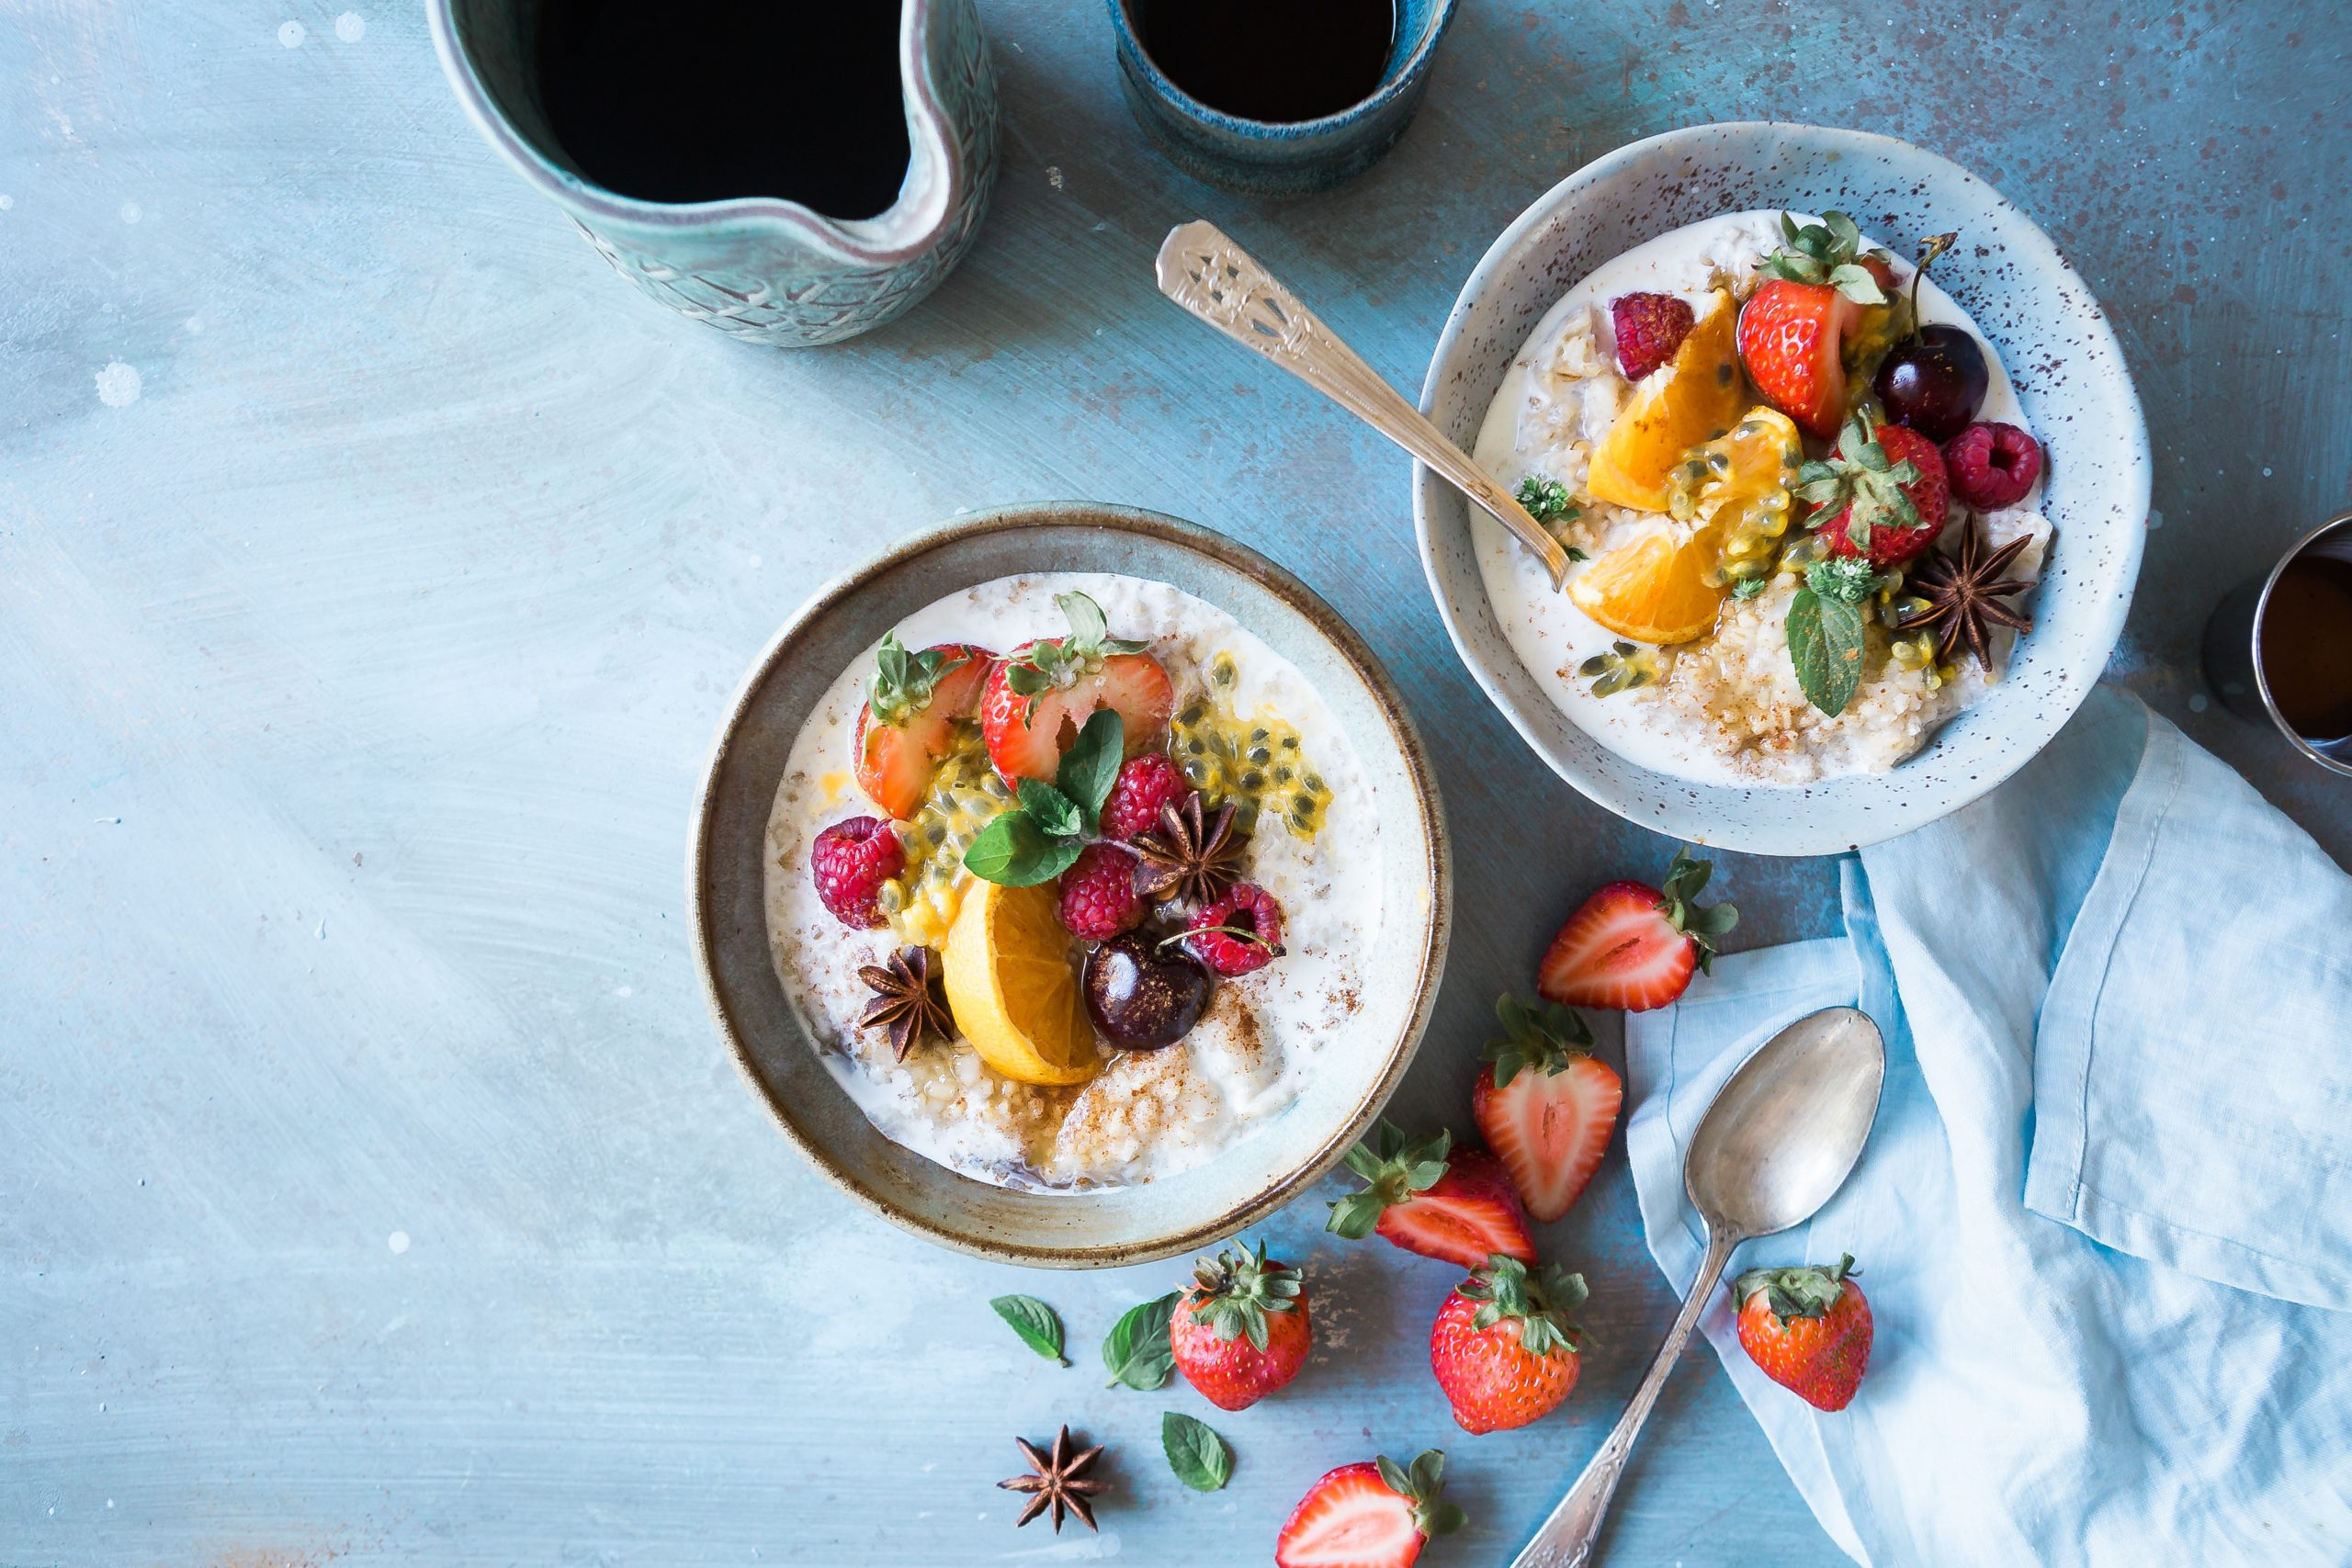 bowls of fruit and healthy food